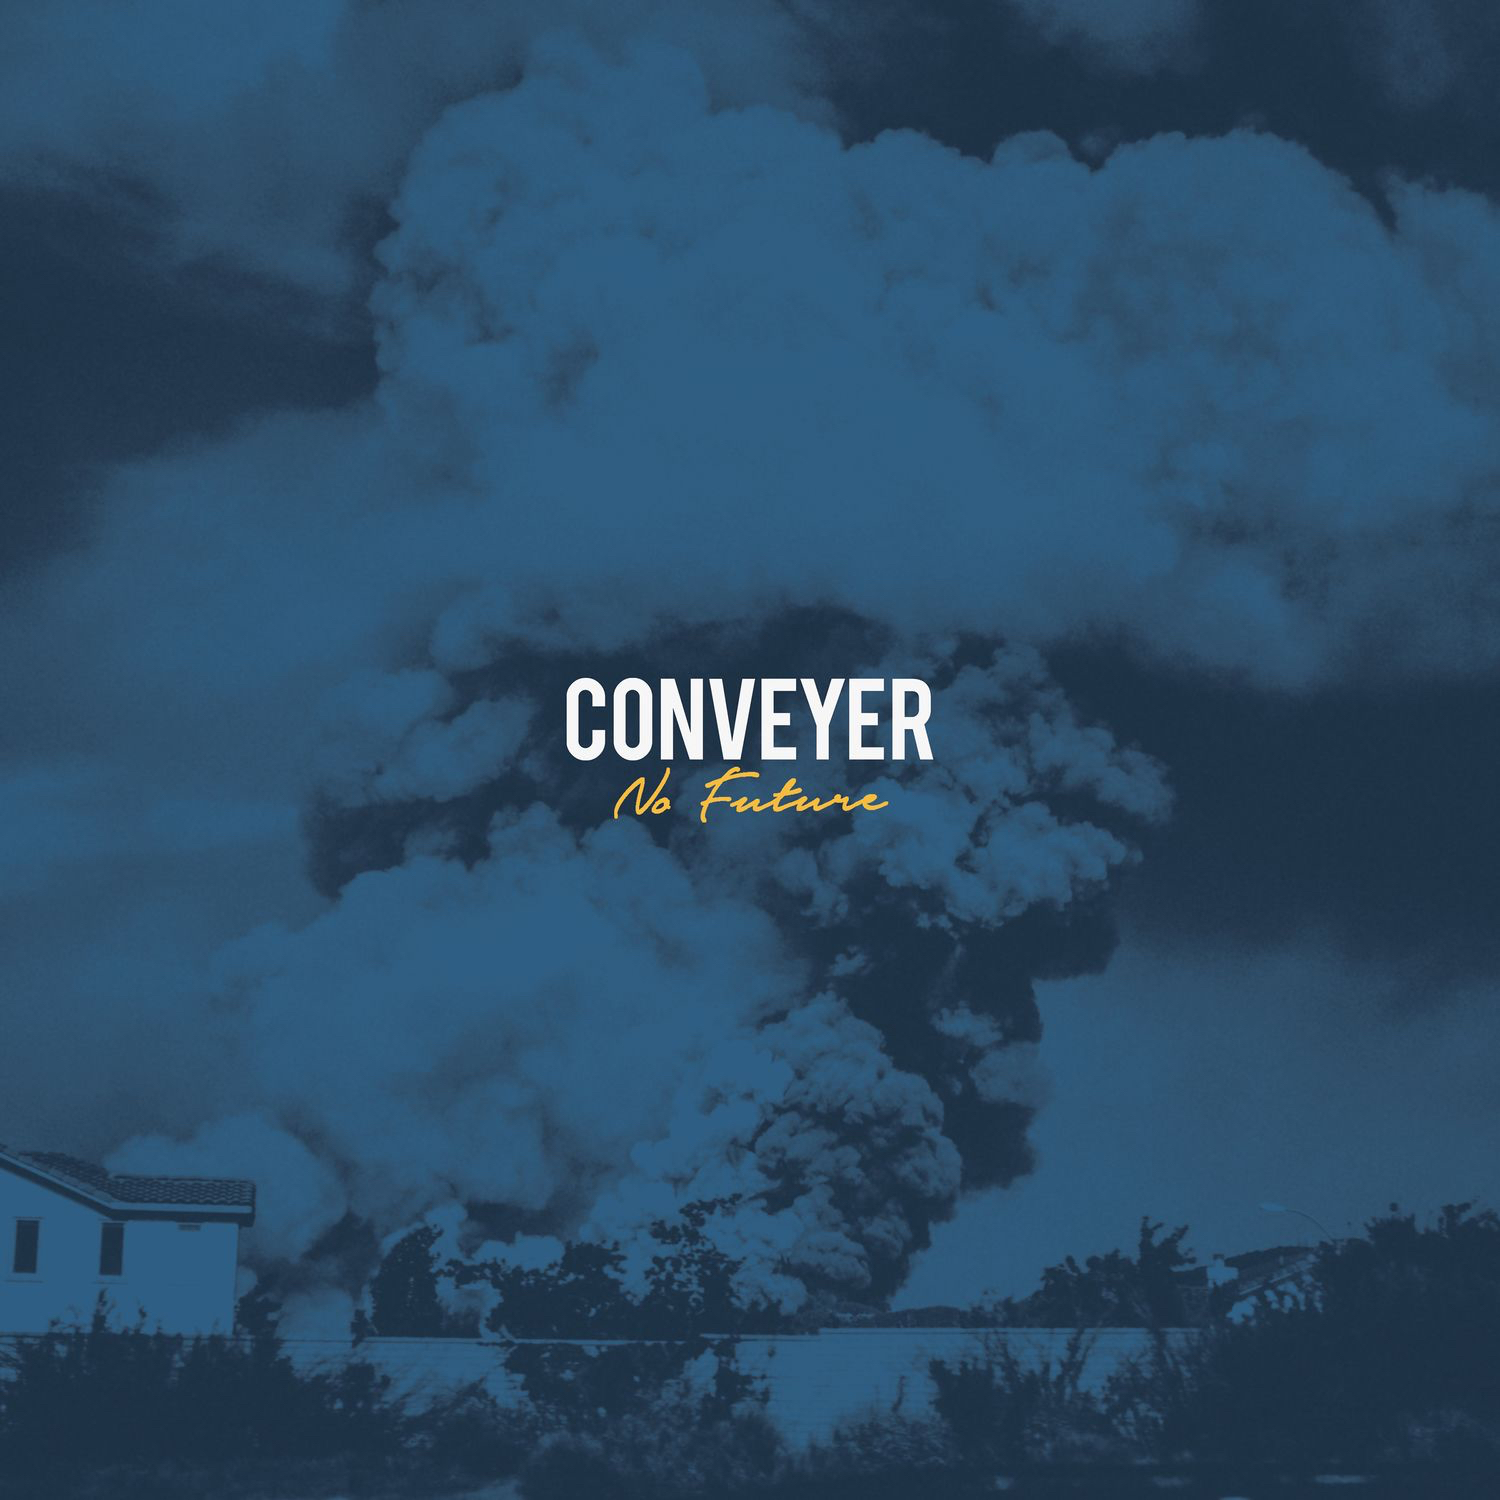 Conveyer - Whetstone [single] (2017)